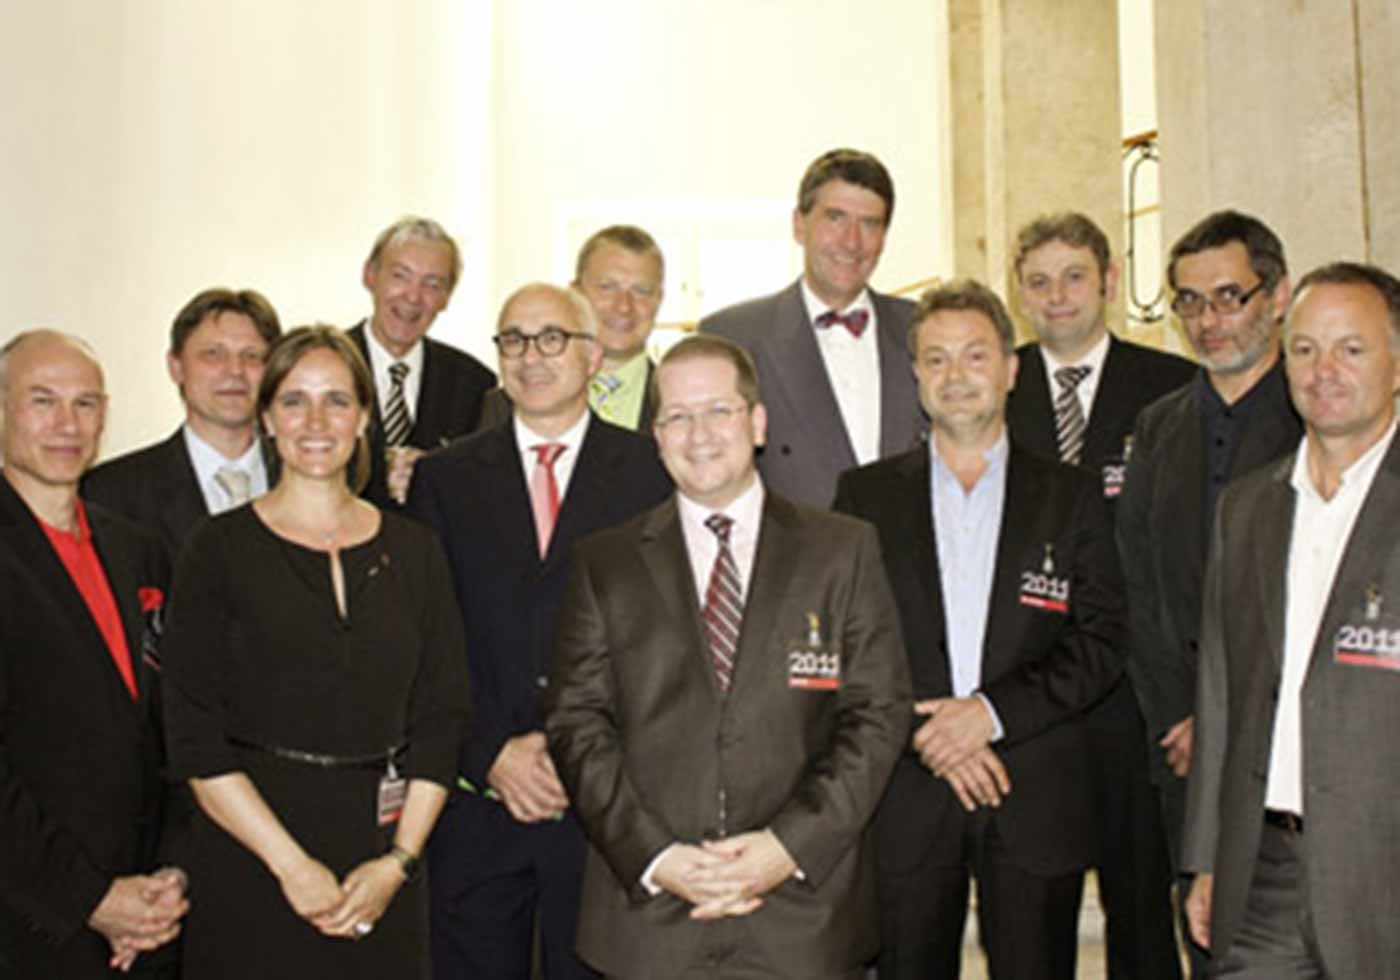 Architect of the Year 2011, Austria